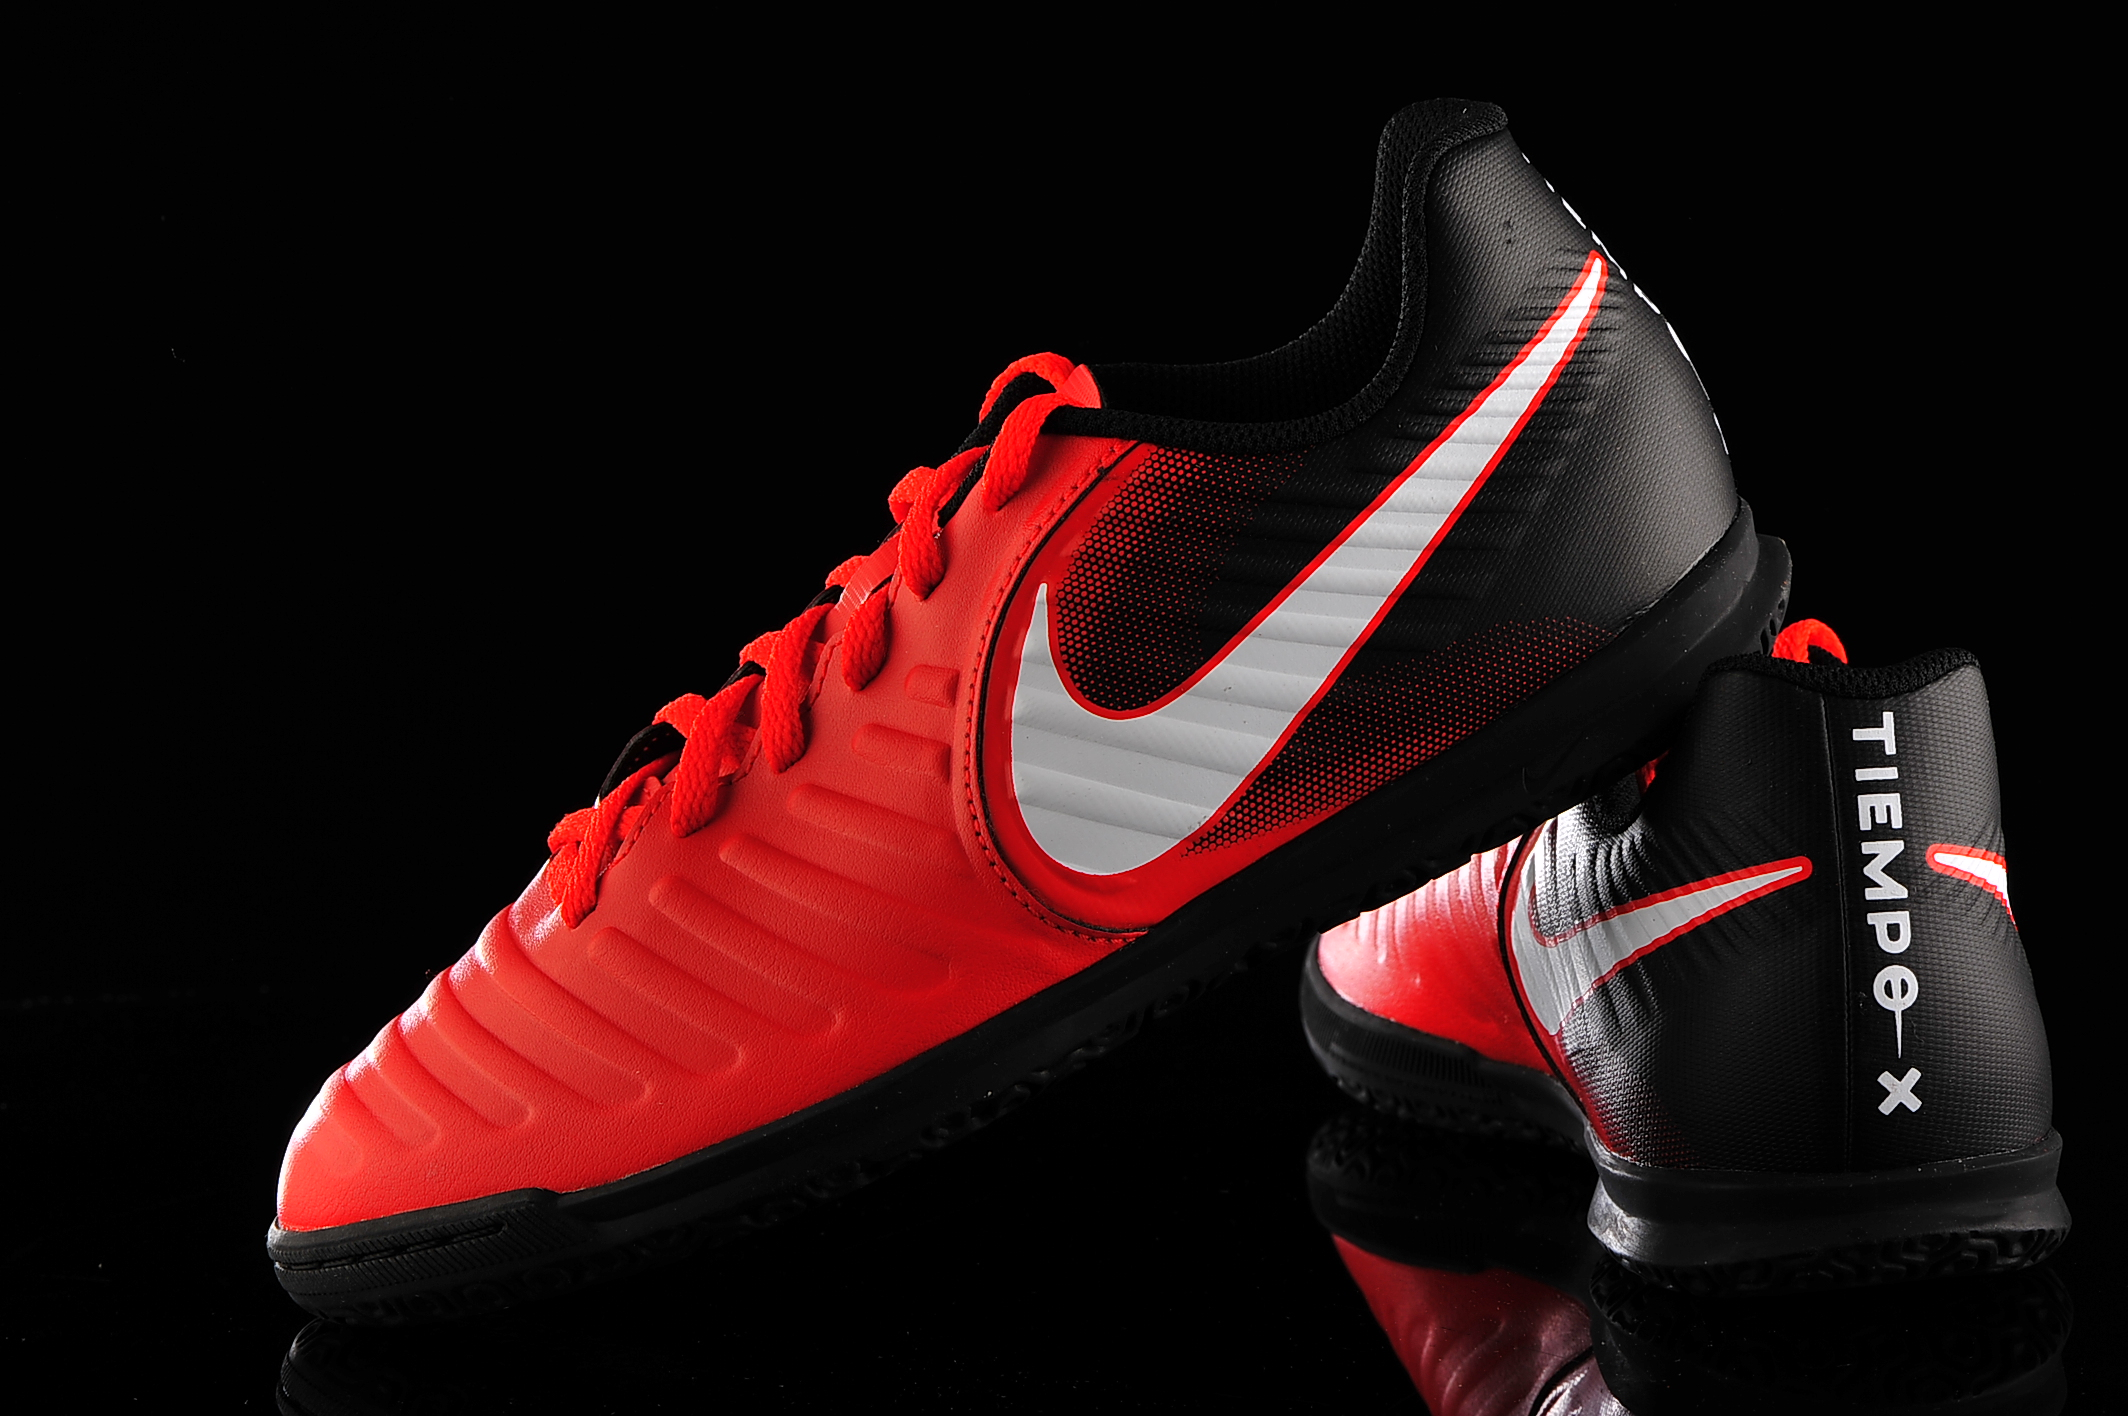 verbo molestarse Interpretar  Nike TiempoX Rio IV IC 897769-616 | R-GOL.com - Football boots & equipment